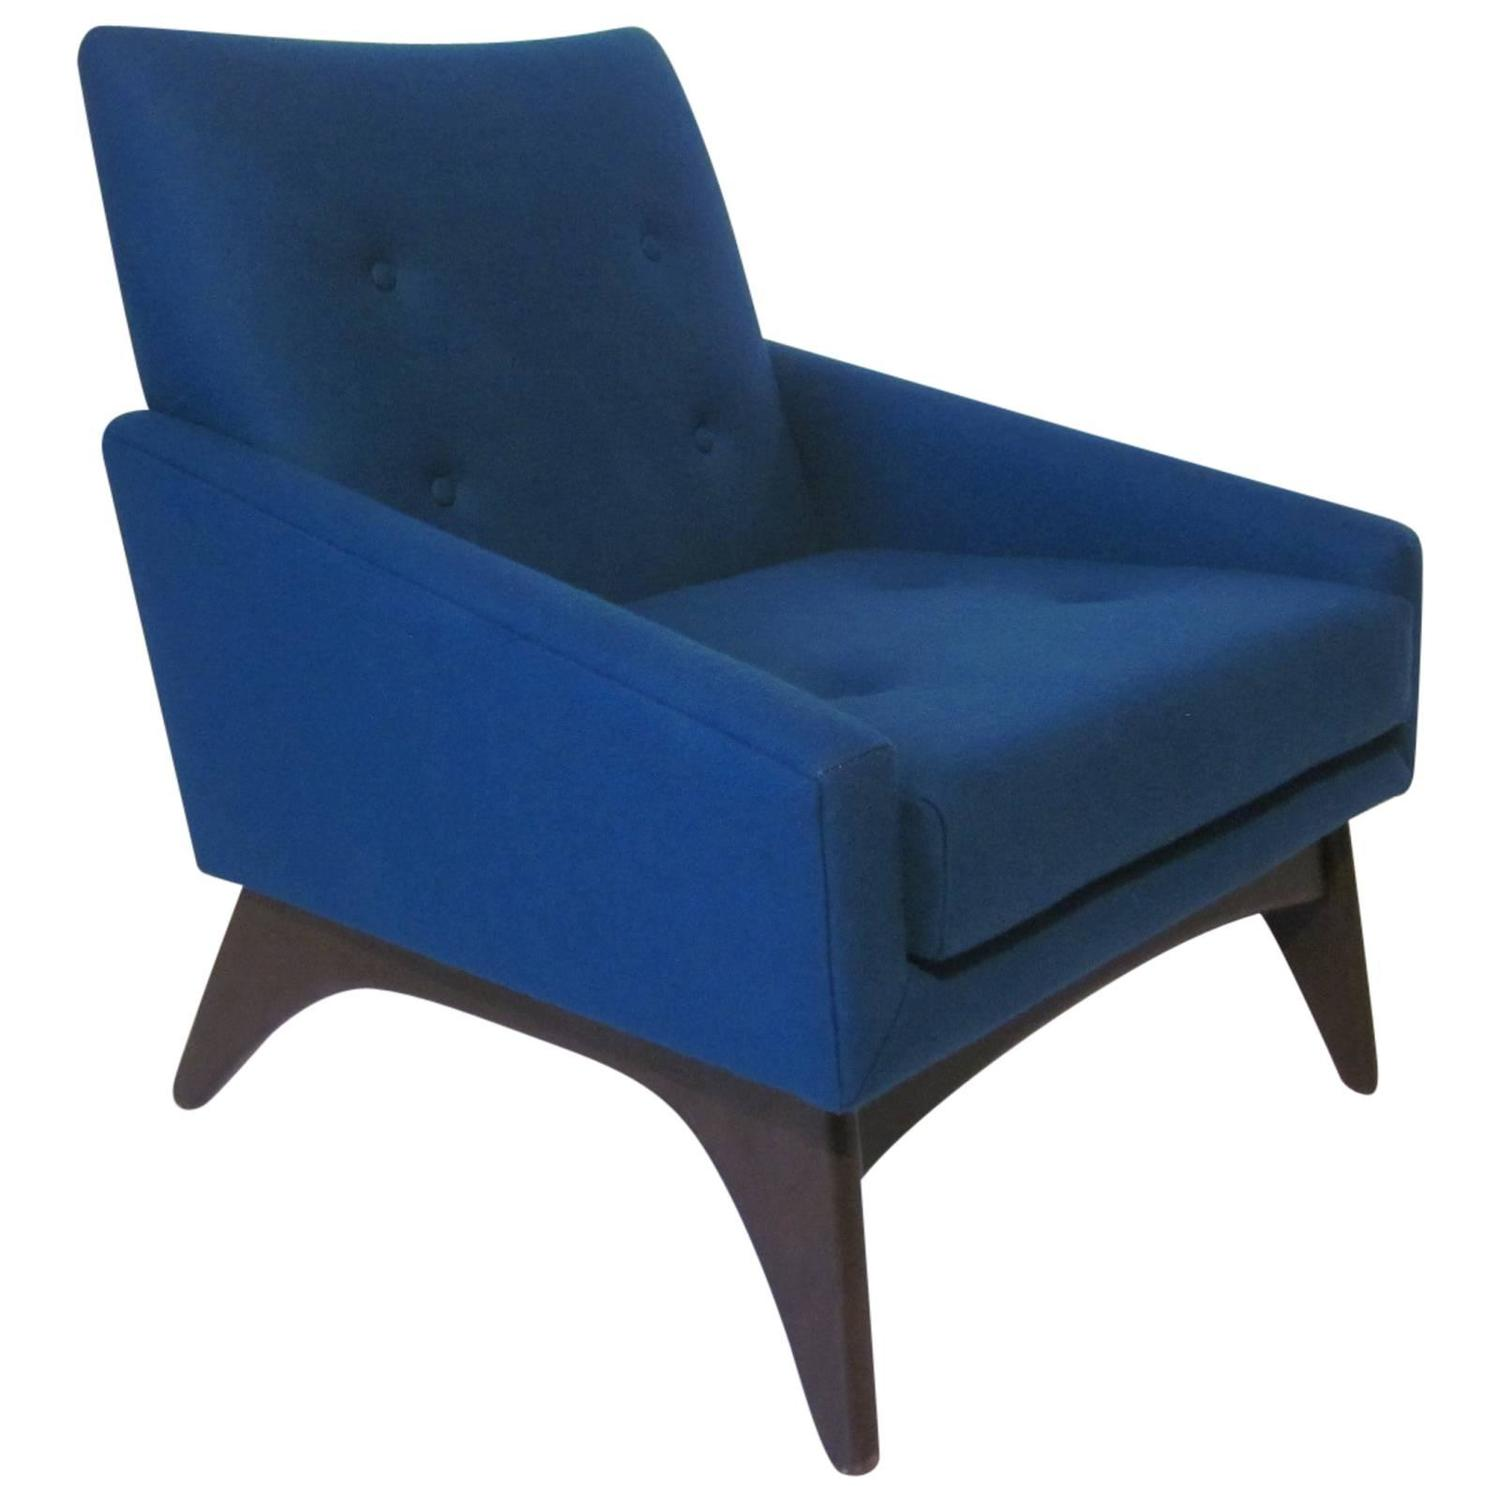 adrian pearsall lounge chair electric chairs for sale styled at 1stdibs